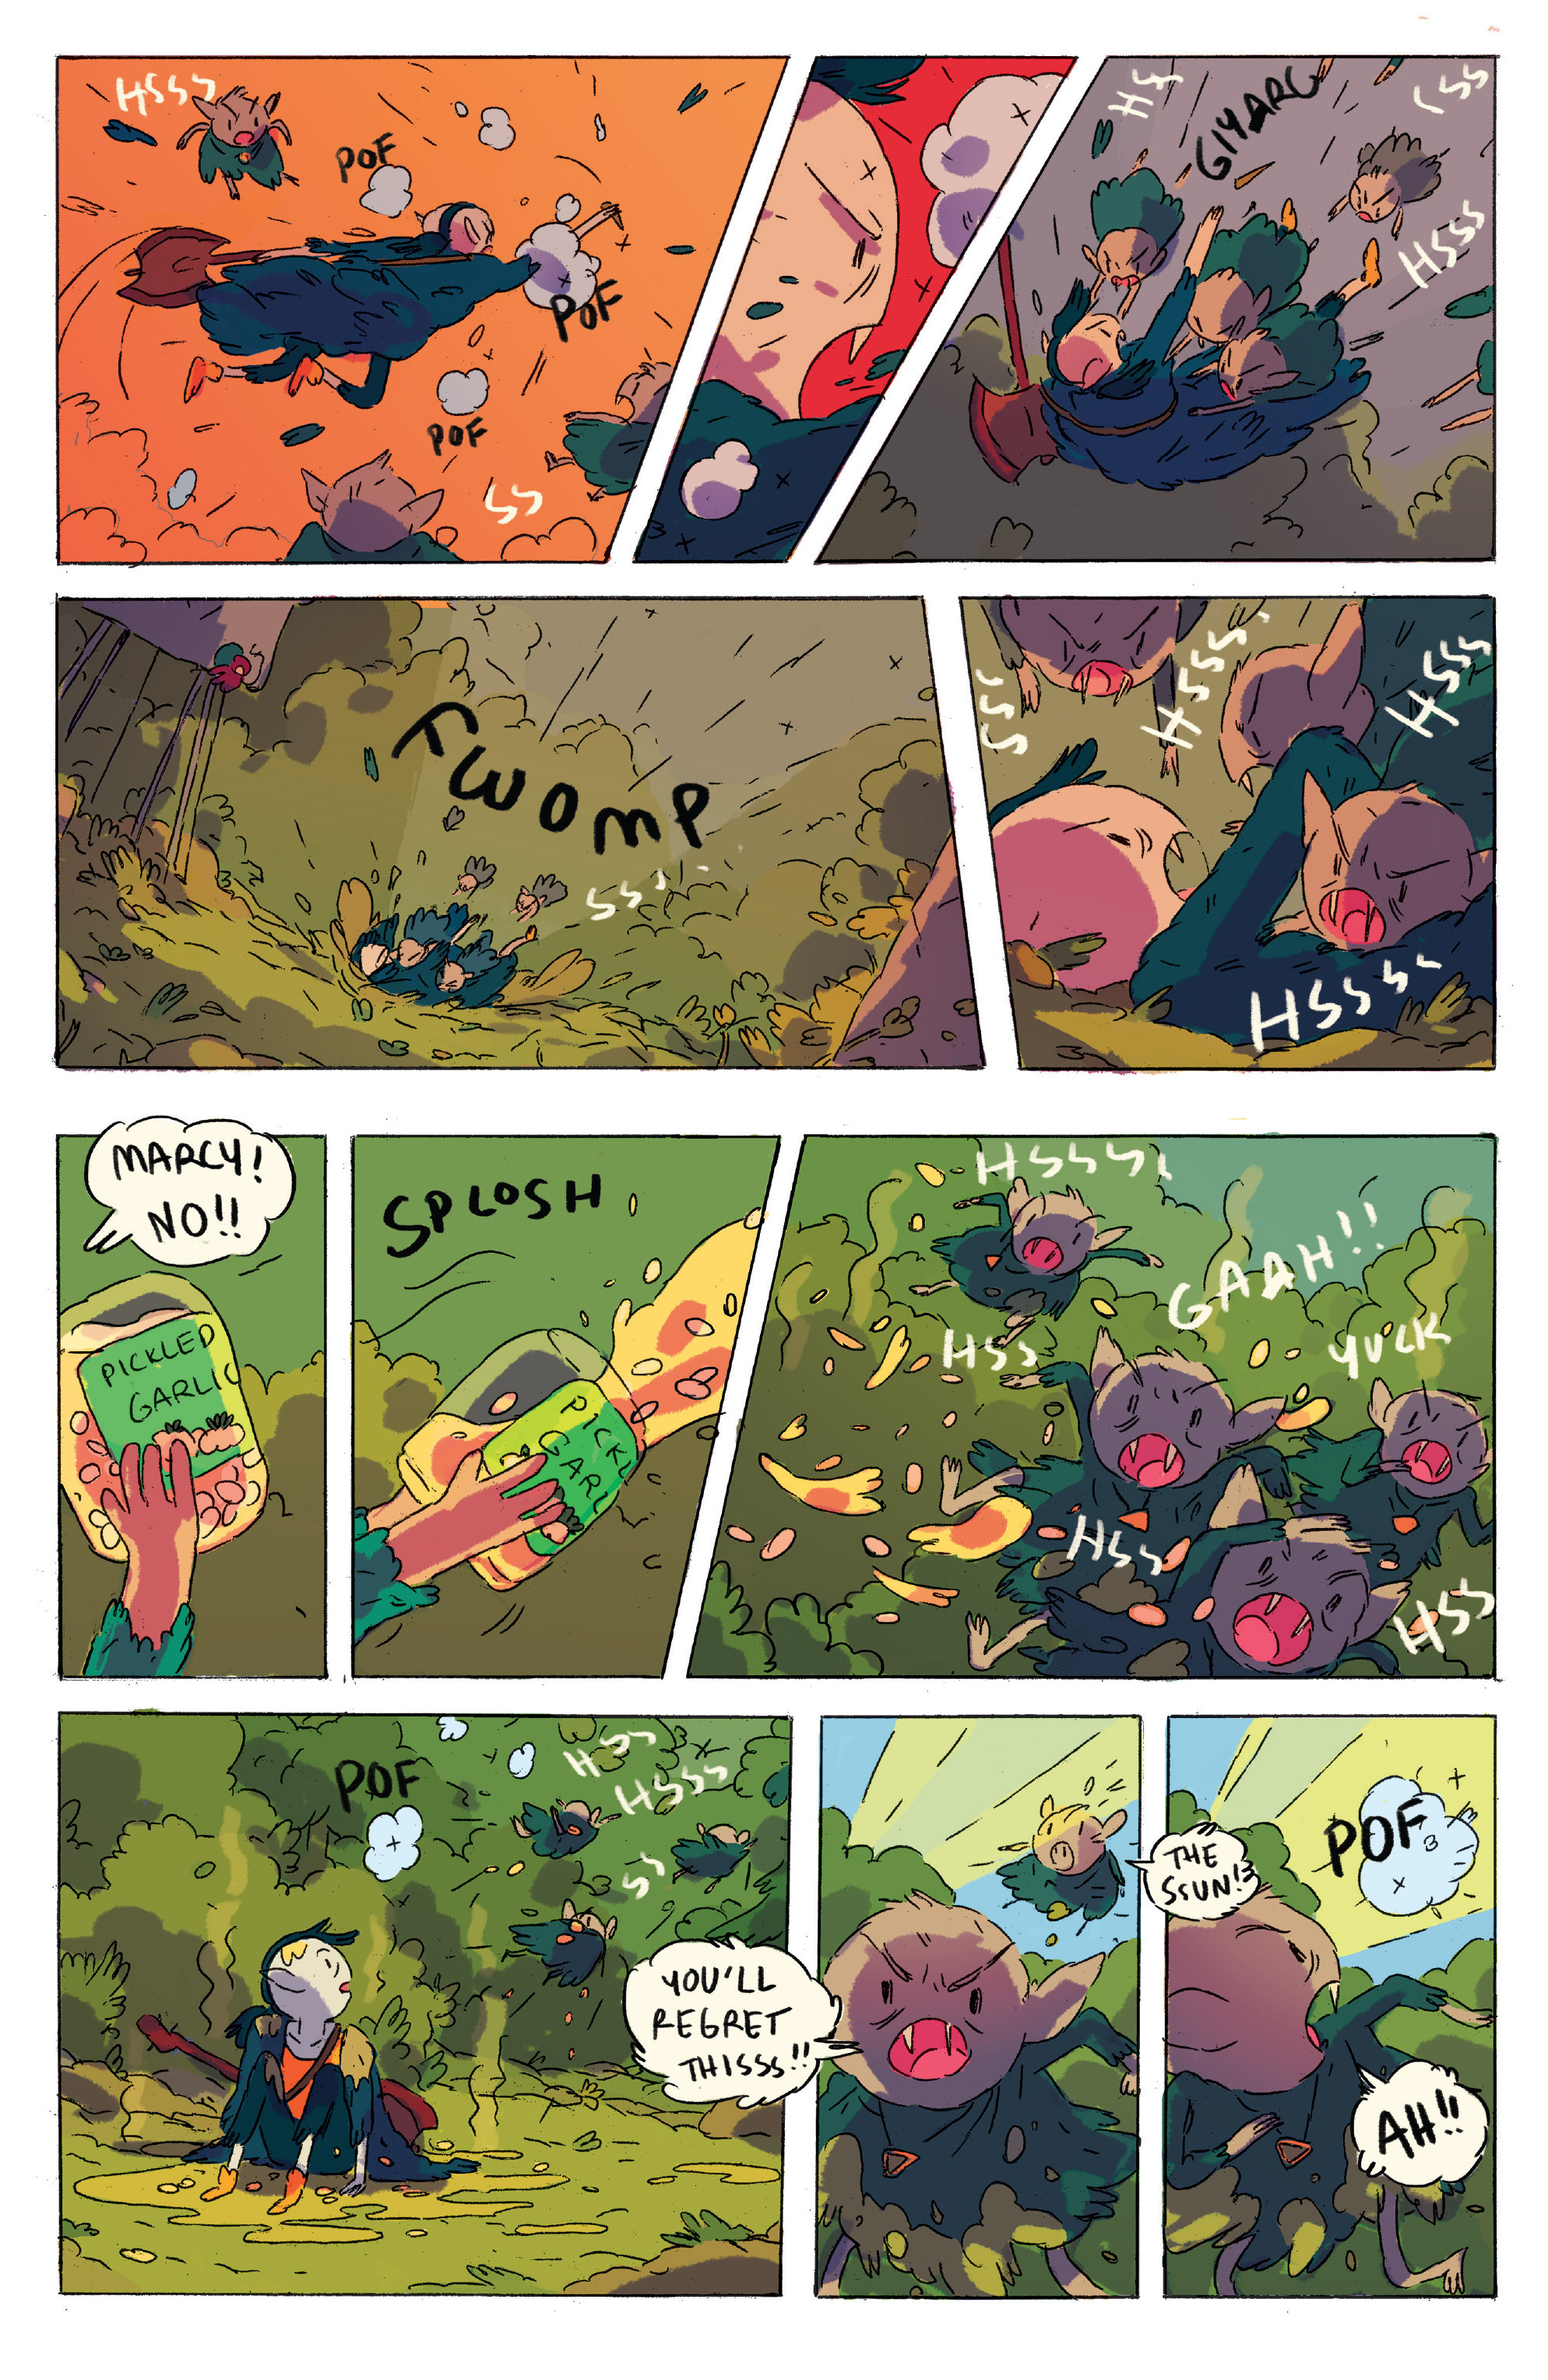 Read online Adventure Time comic -  Issue # _2015 Spoooktacular - 17